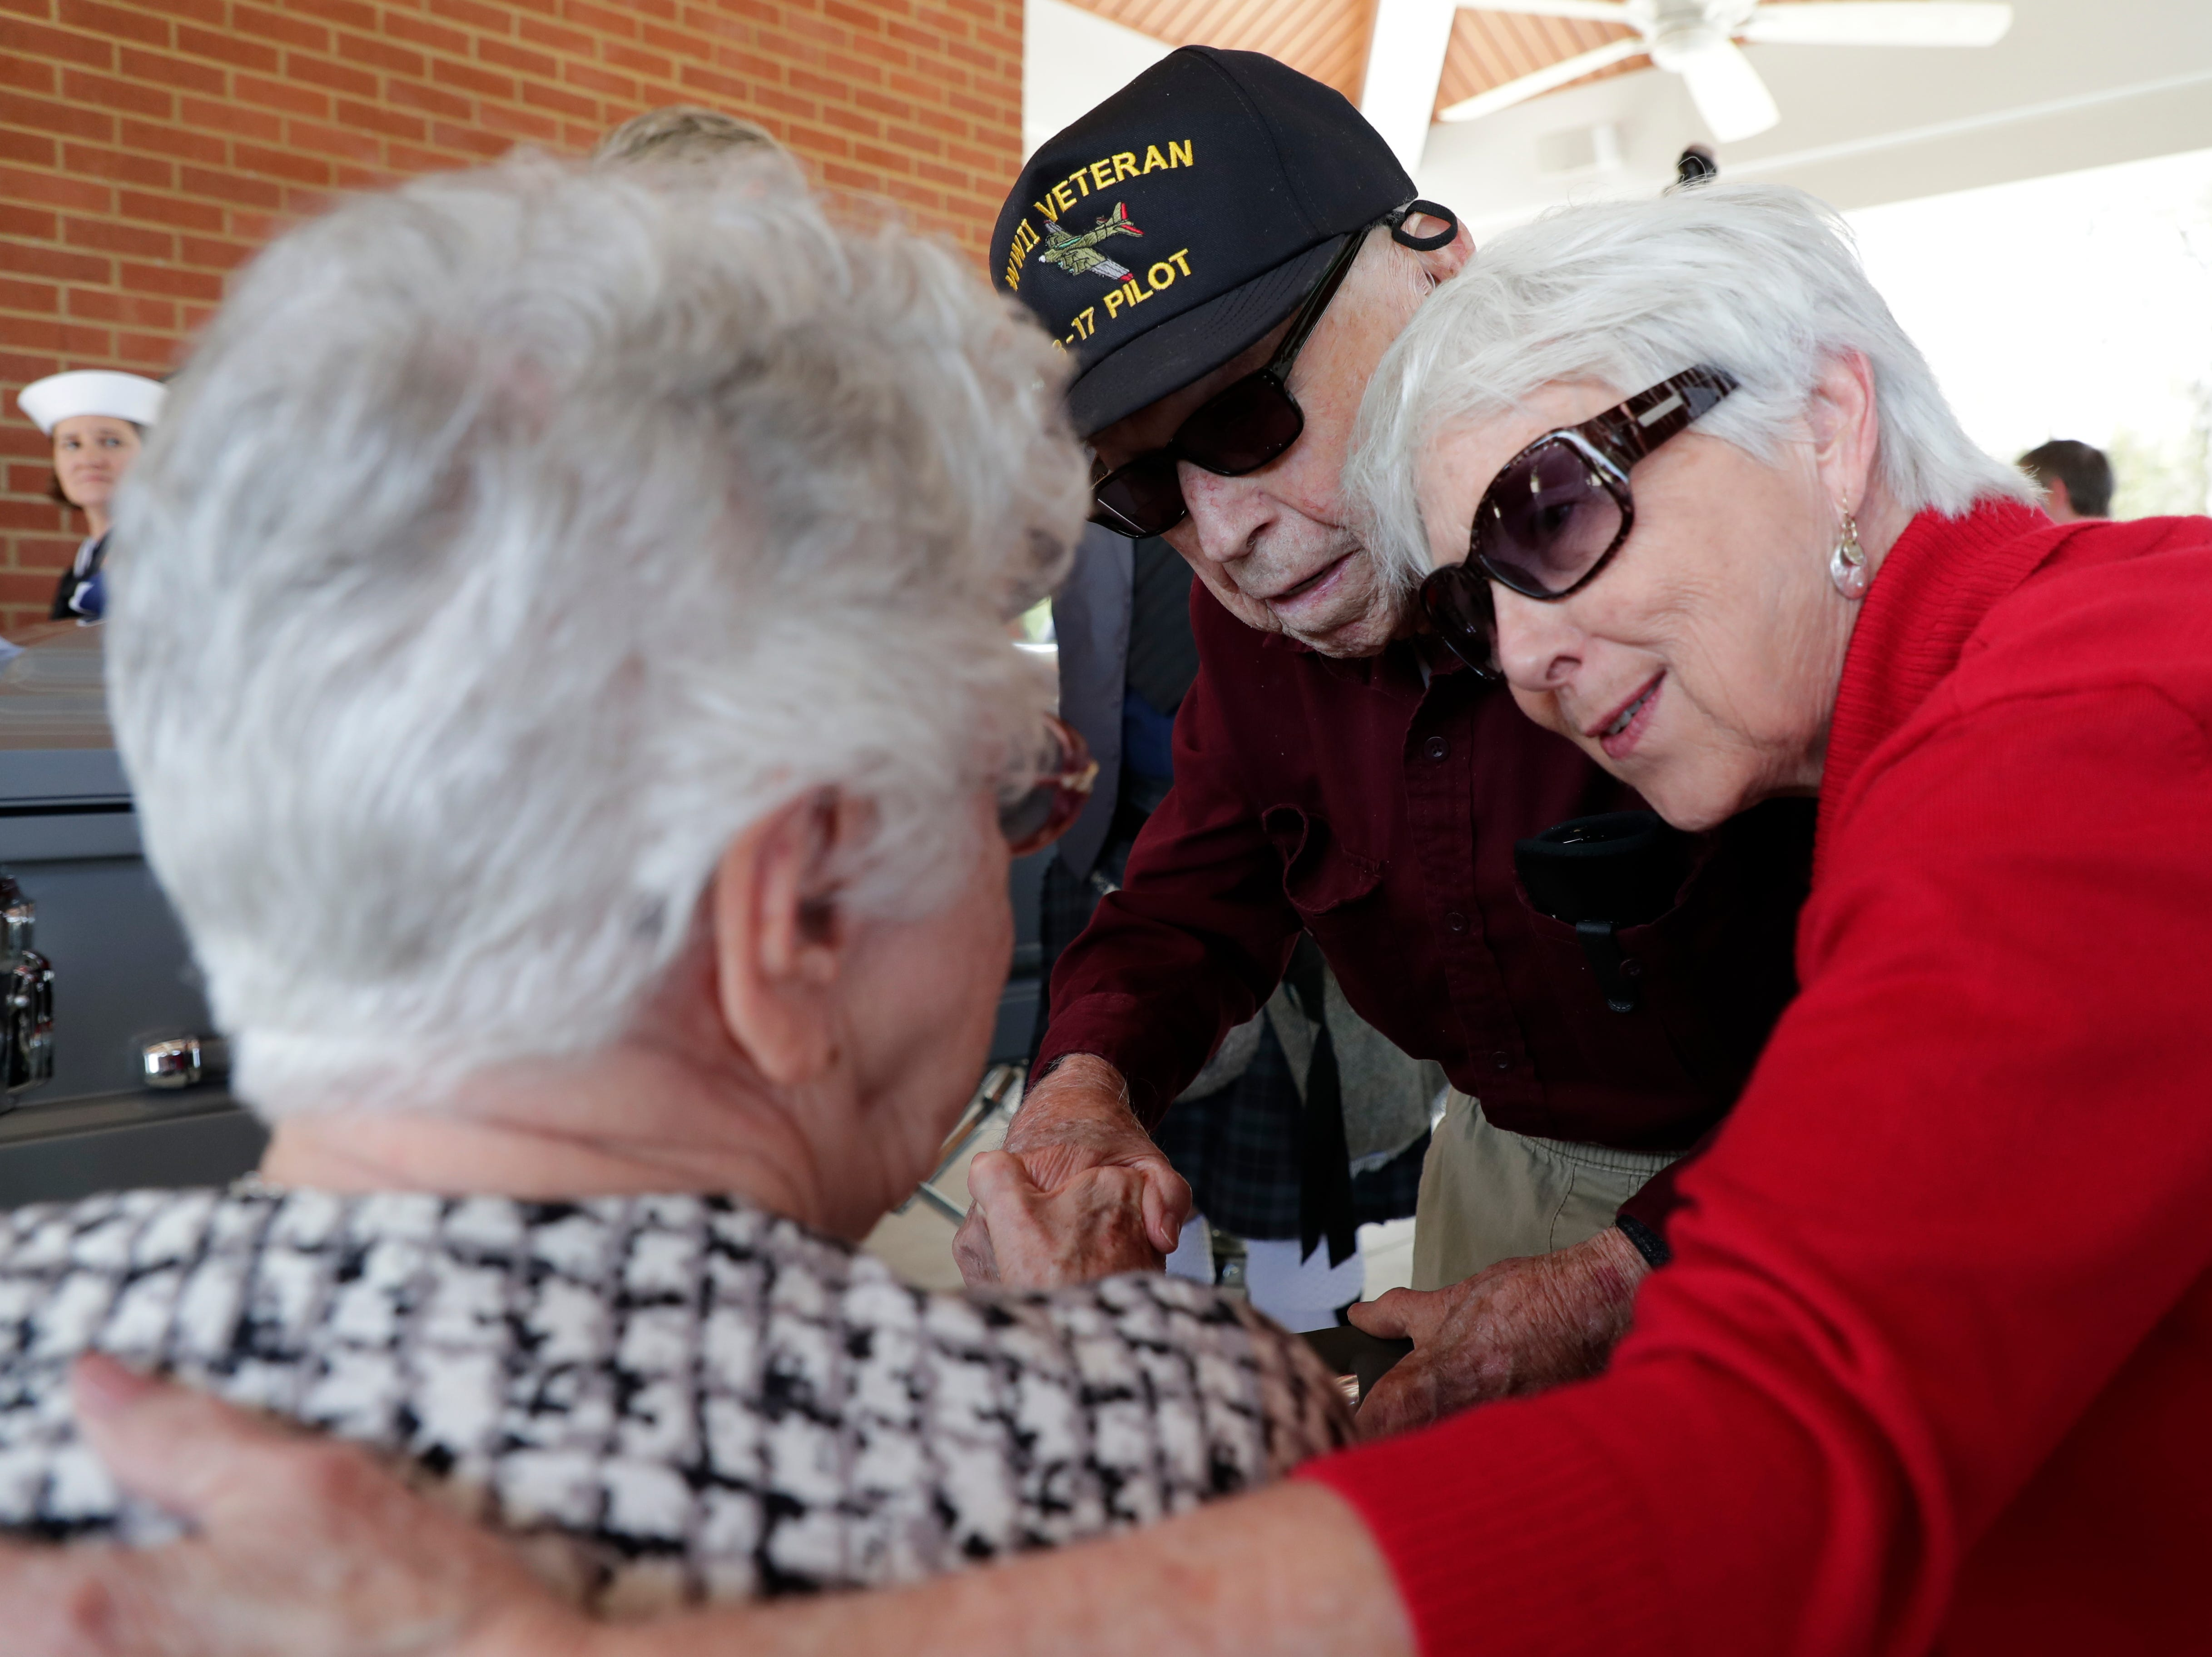 Emily Golz, sister of Earl Paul Baum, a sailor who was killed in Pearl Harbor, left, receives condolences from family friends Bill Bigham, center, and his daughter Patty Williams. A funeral was held at the Tallahassee National Cemetery honoring Baum Friday, March 8, 2019.